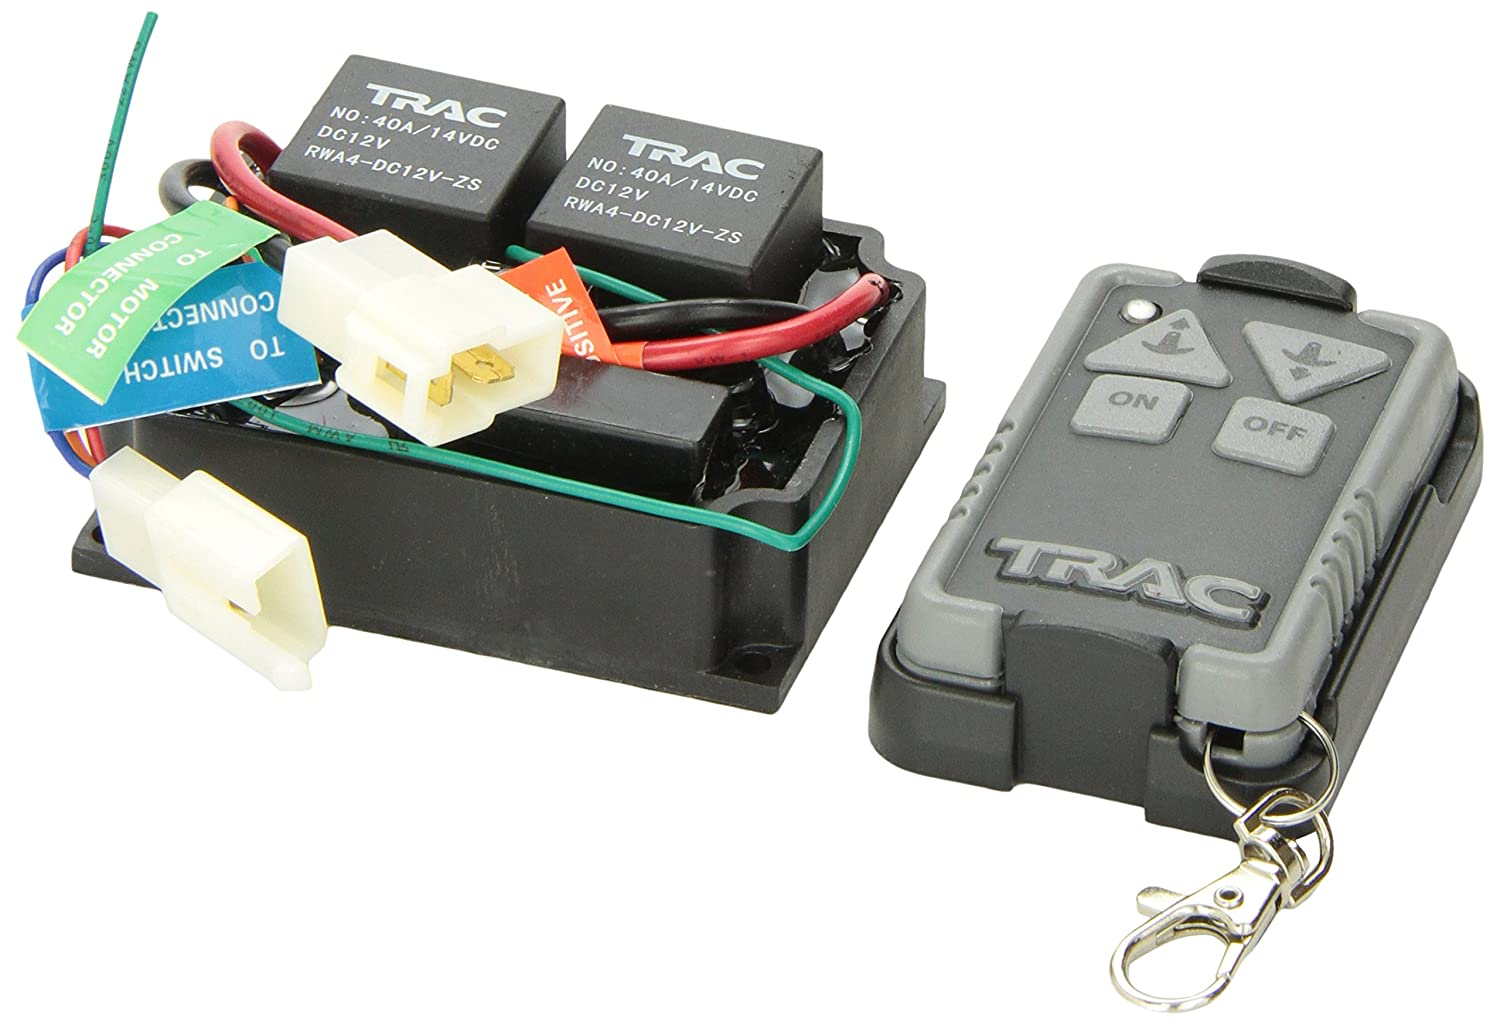 Trac T10116 Anchor Winch Wireless Remote Kit TRAC Outdoor Products